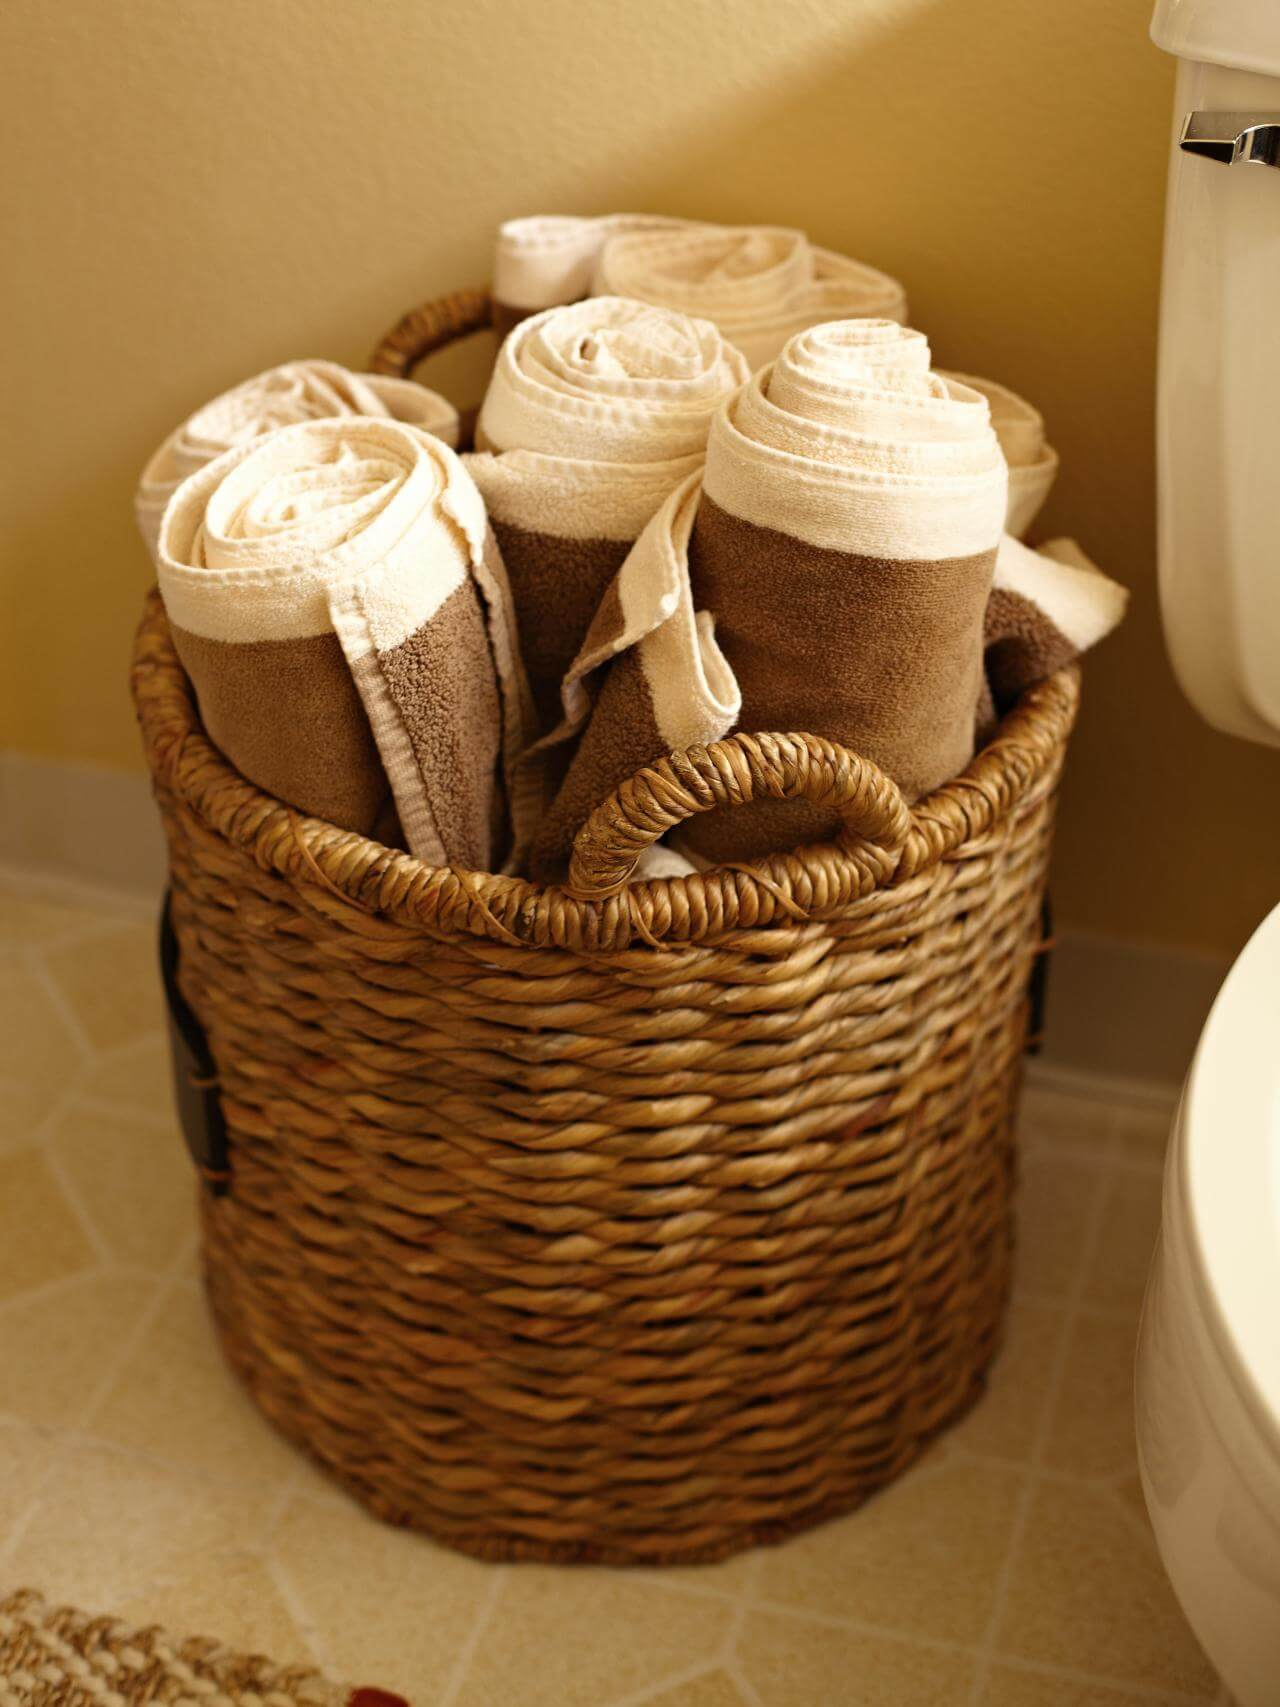 Woven Provincial Rolled Towel Basket